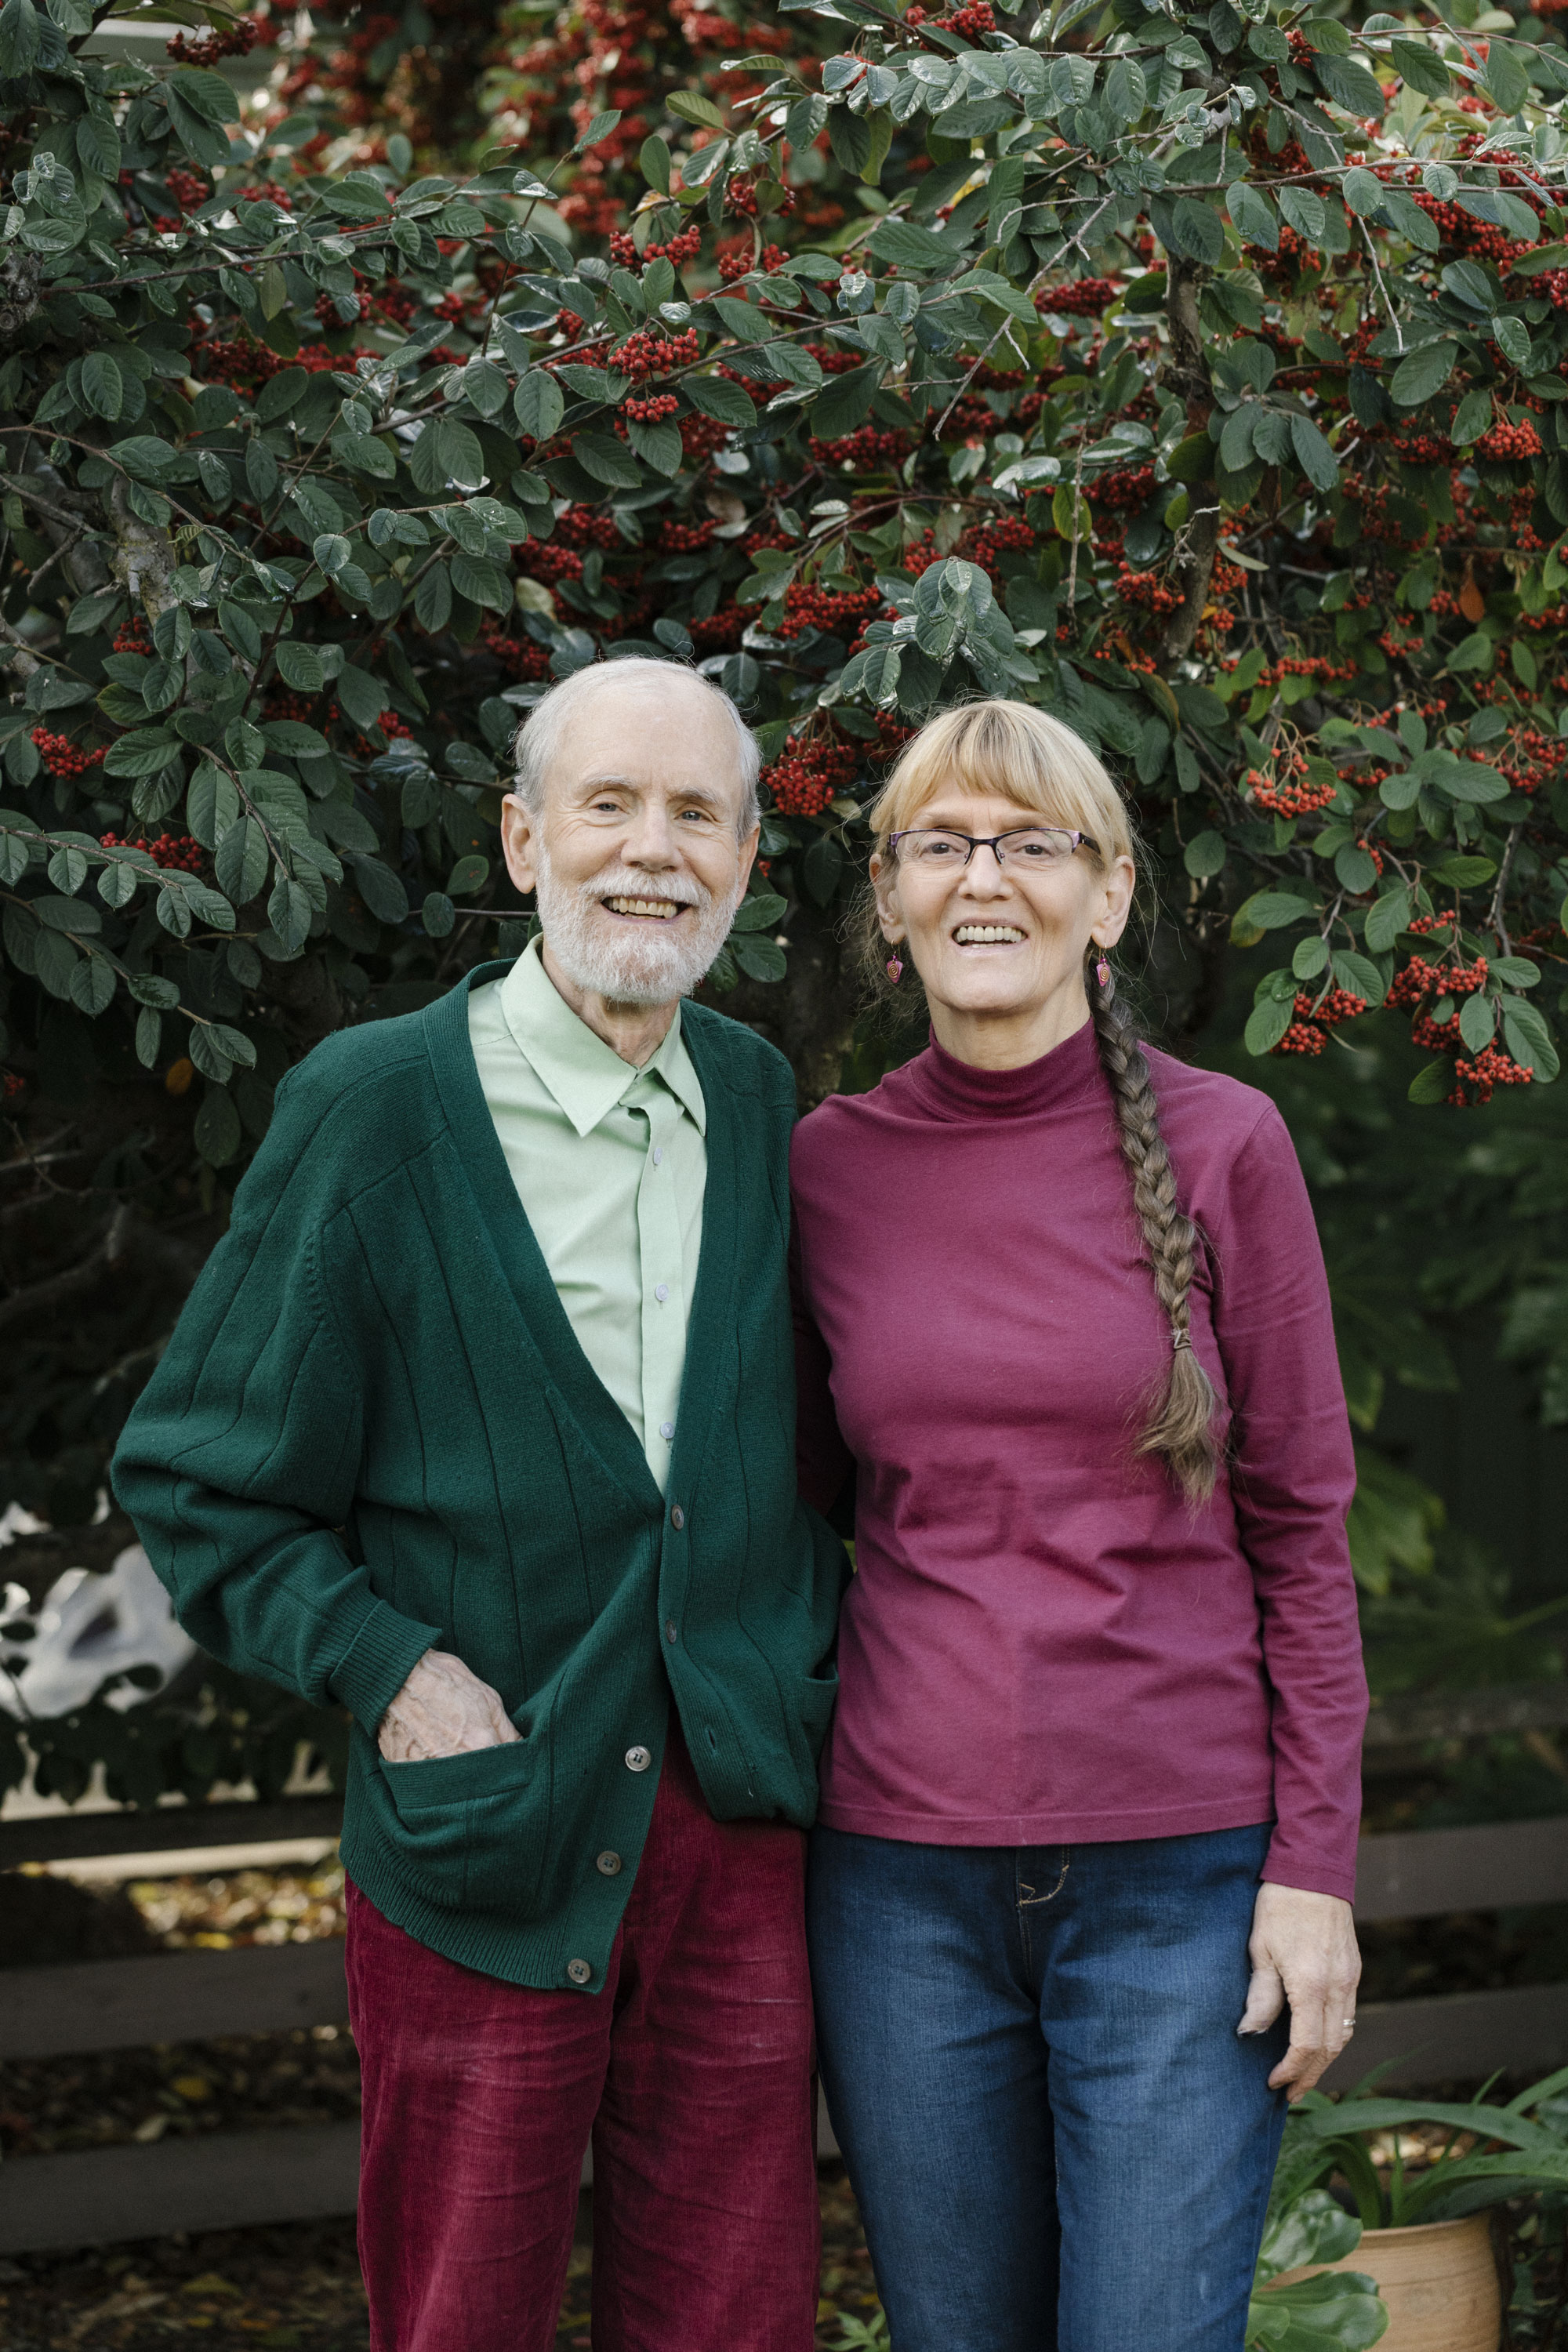 Bruce Heflinger '69, SM '71, PhD '80, and Mary DeMasters